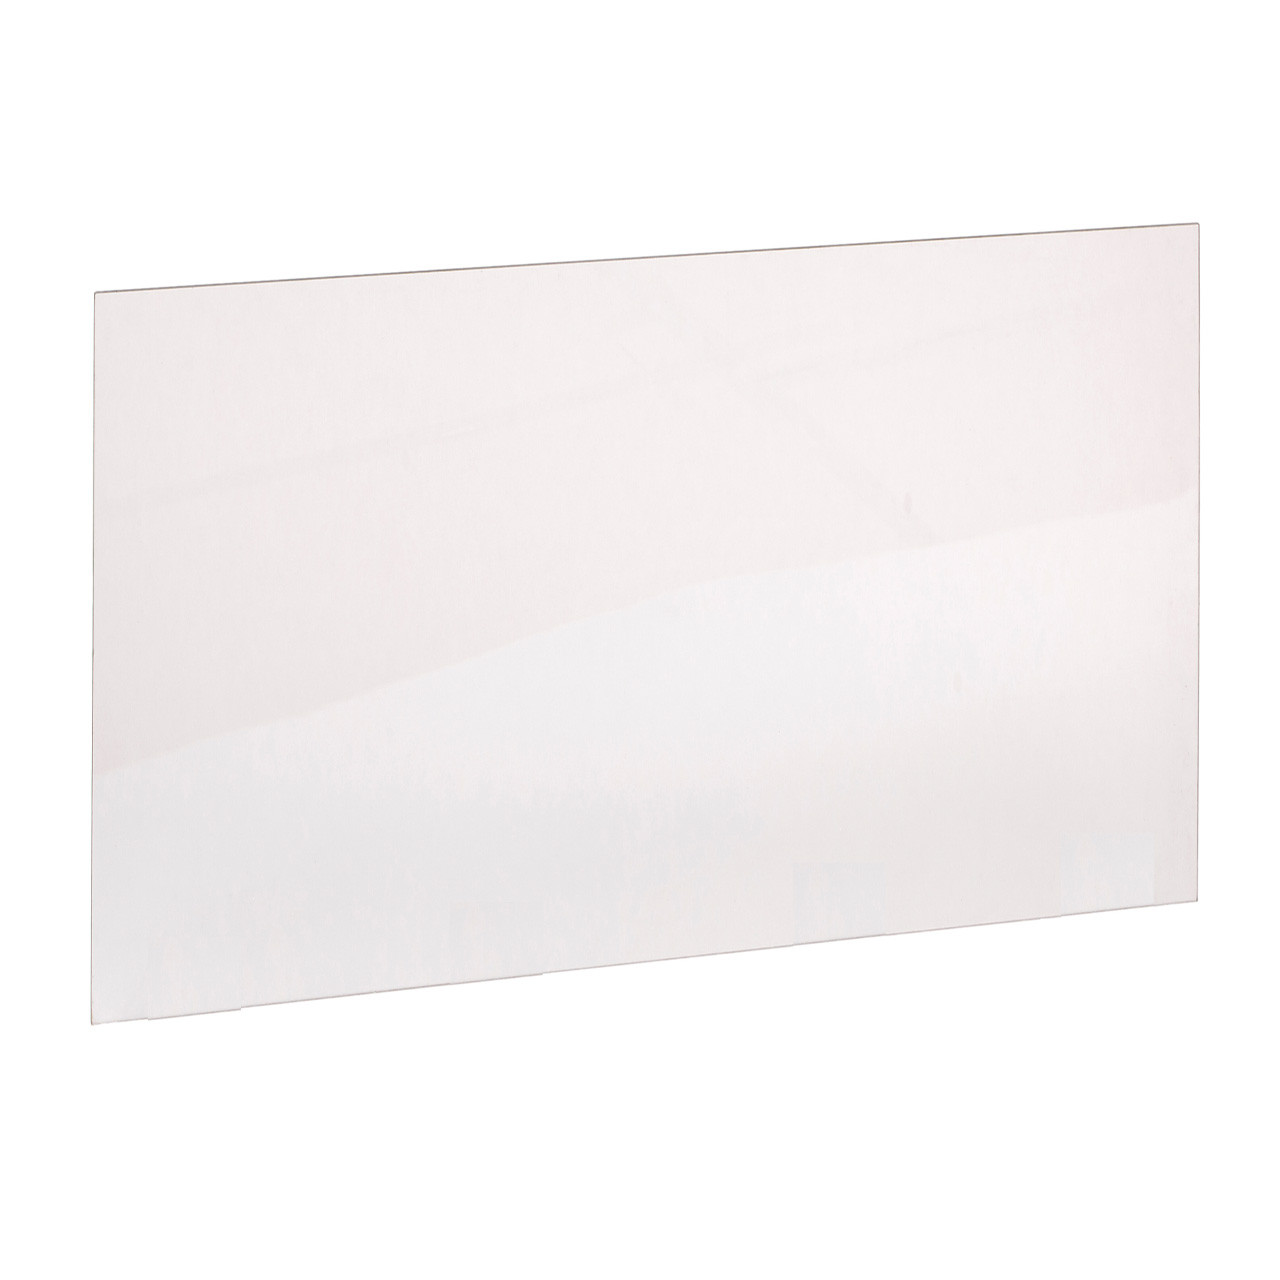 Window Insert 3' x 4' - Clear